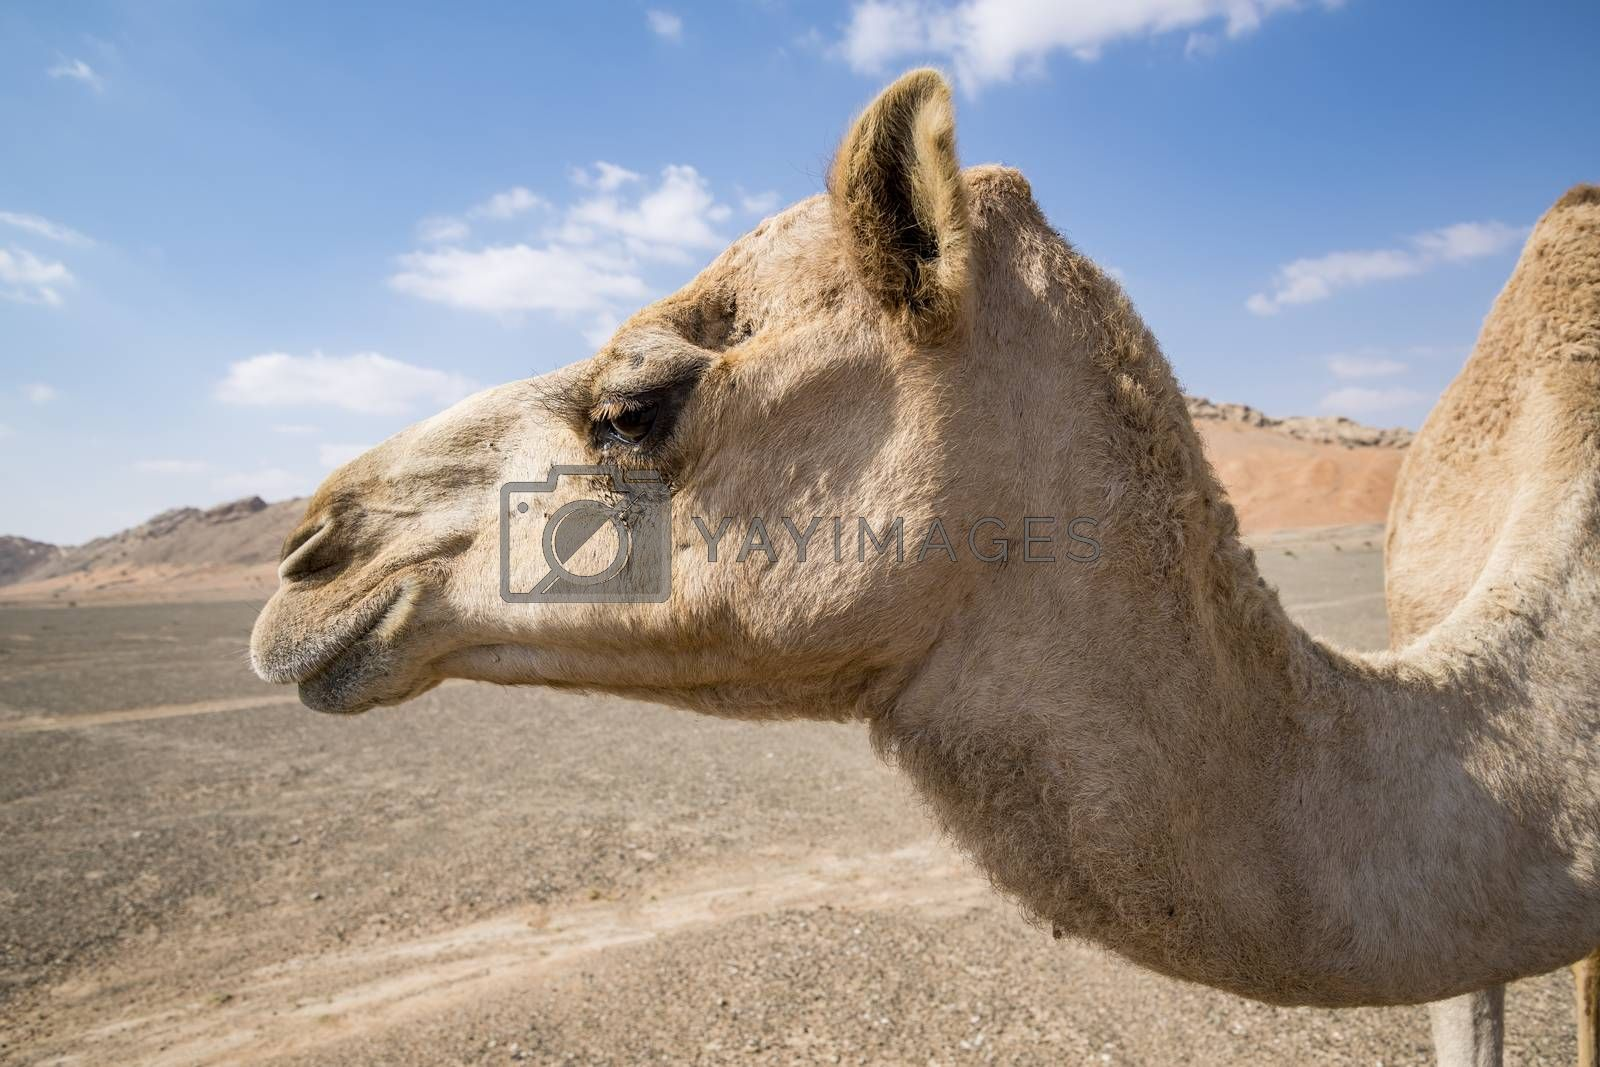 Closeup of Camel head in the desert of Sharjah Emirates, United Arab Emirates